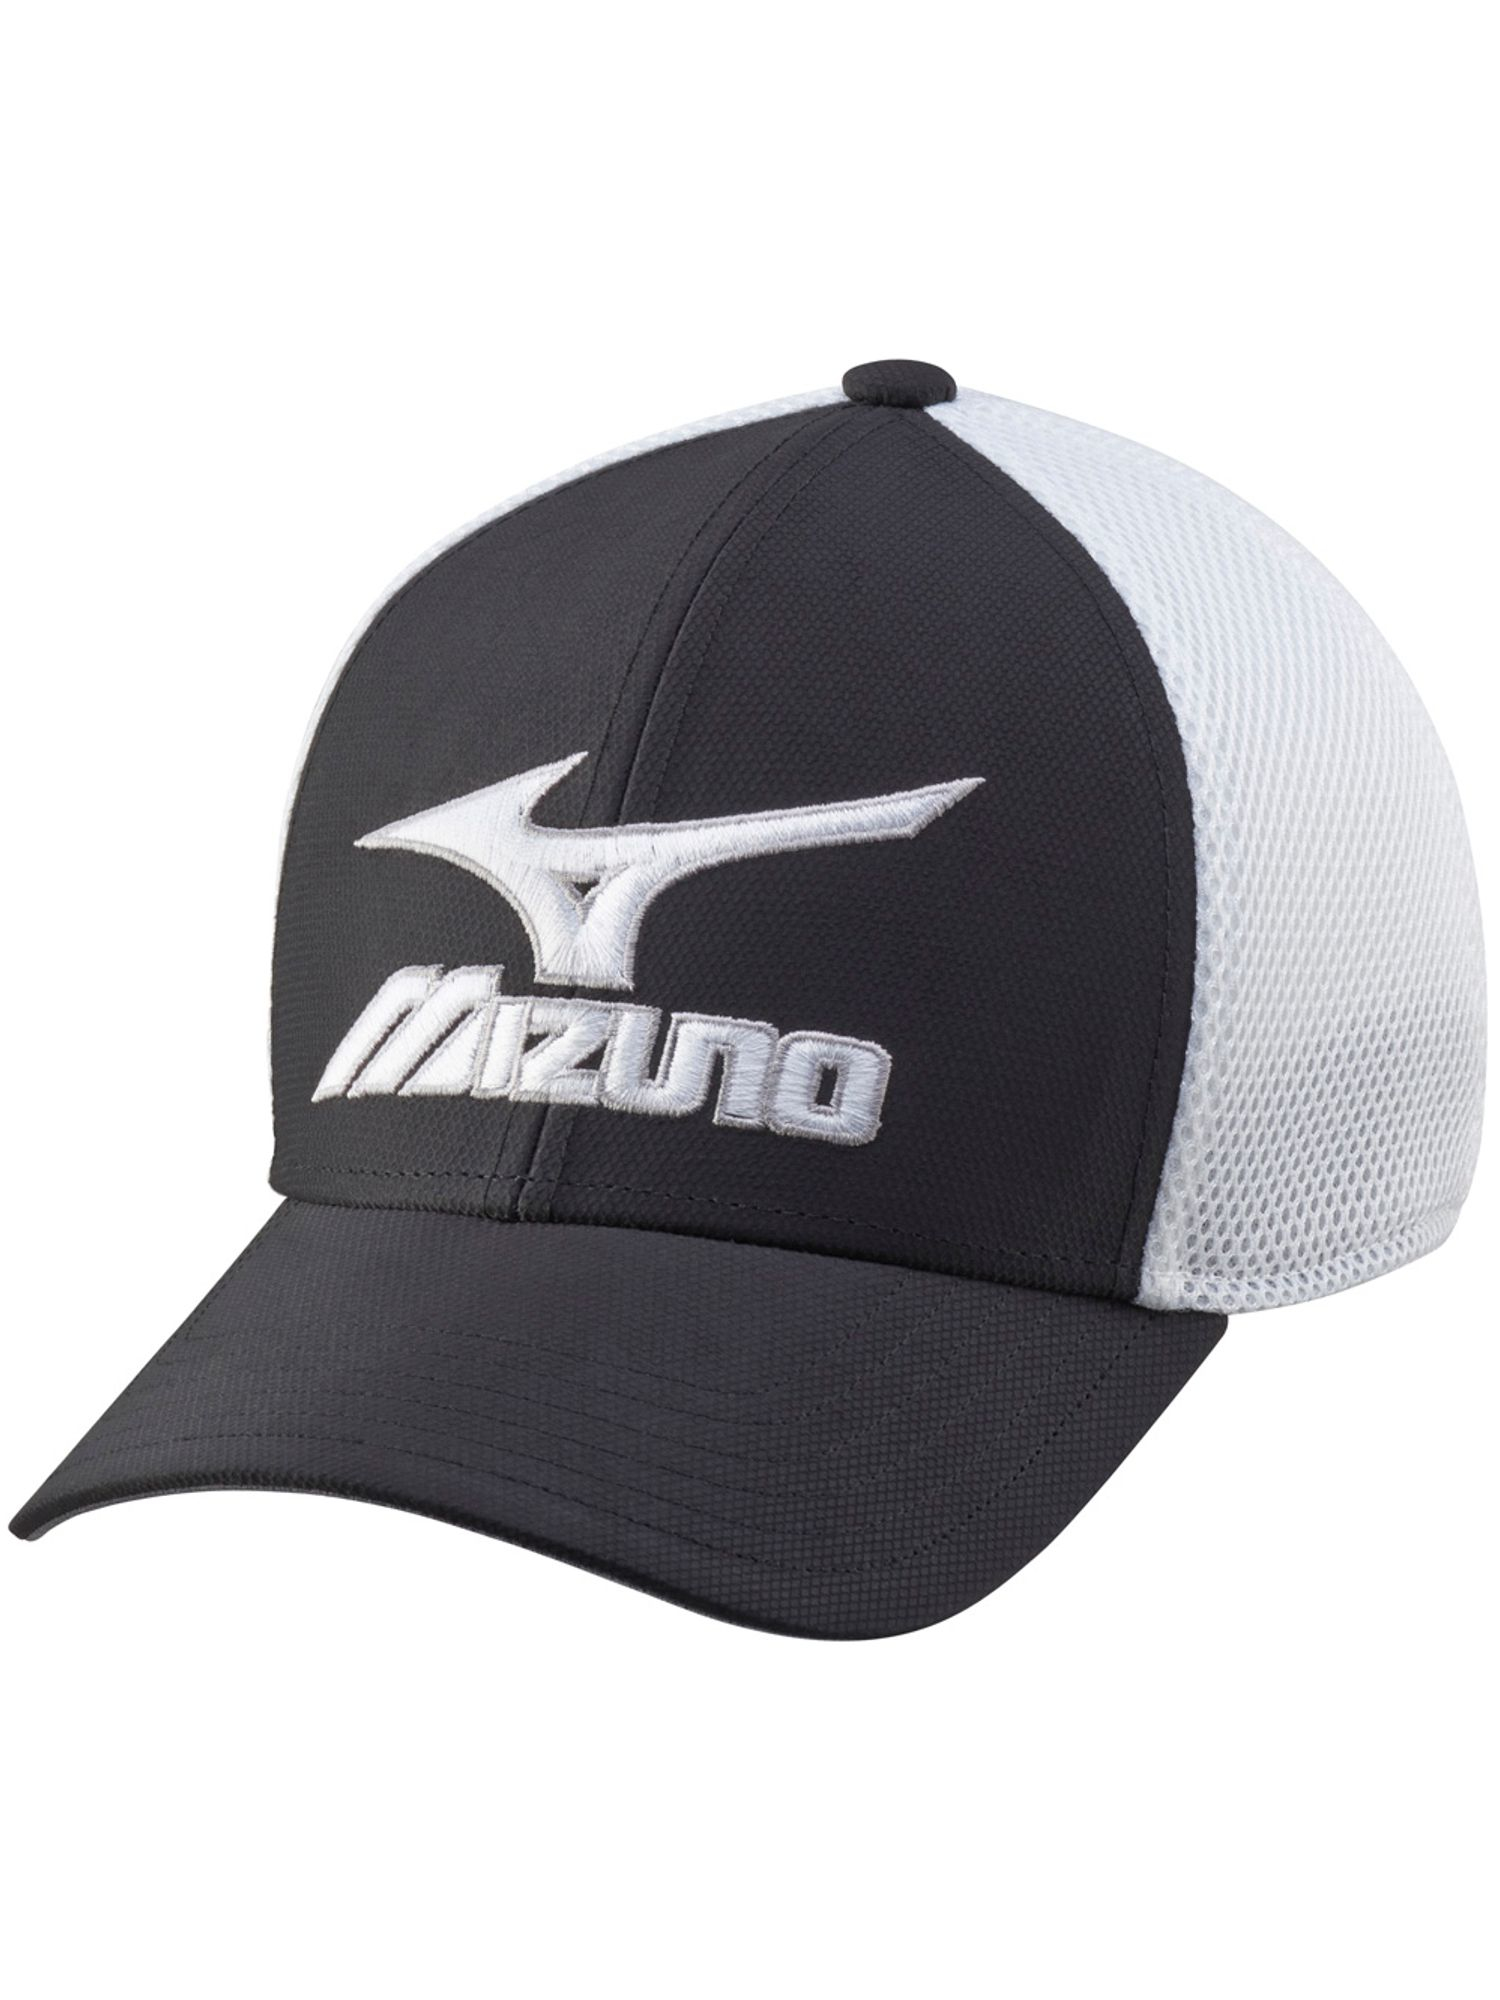 b76ea2c9dc5 Lyst - Mizuno Phantom Cap in White for Men